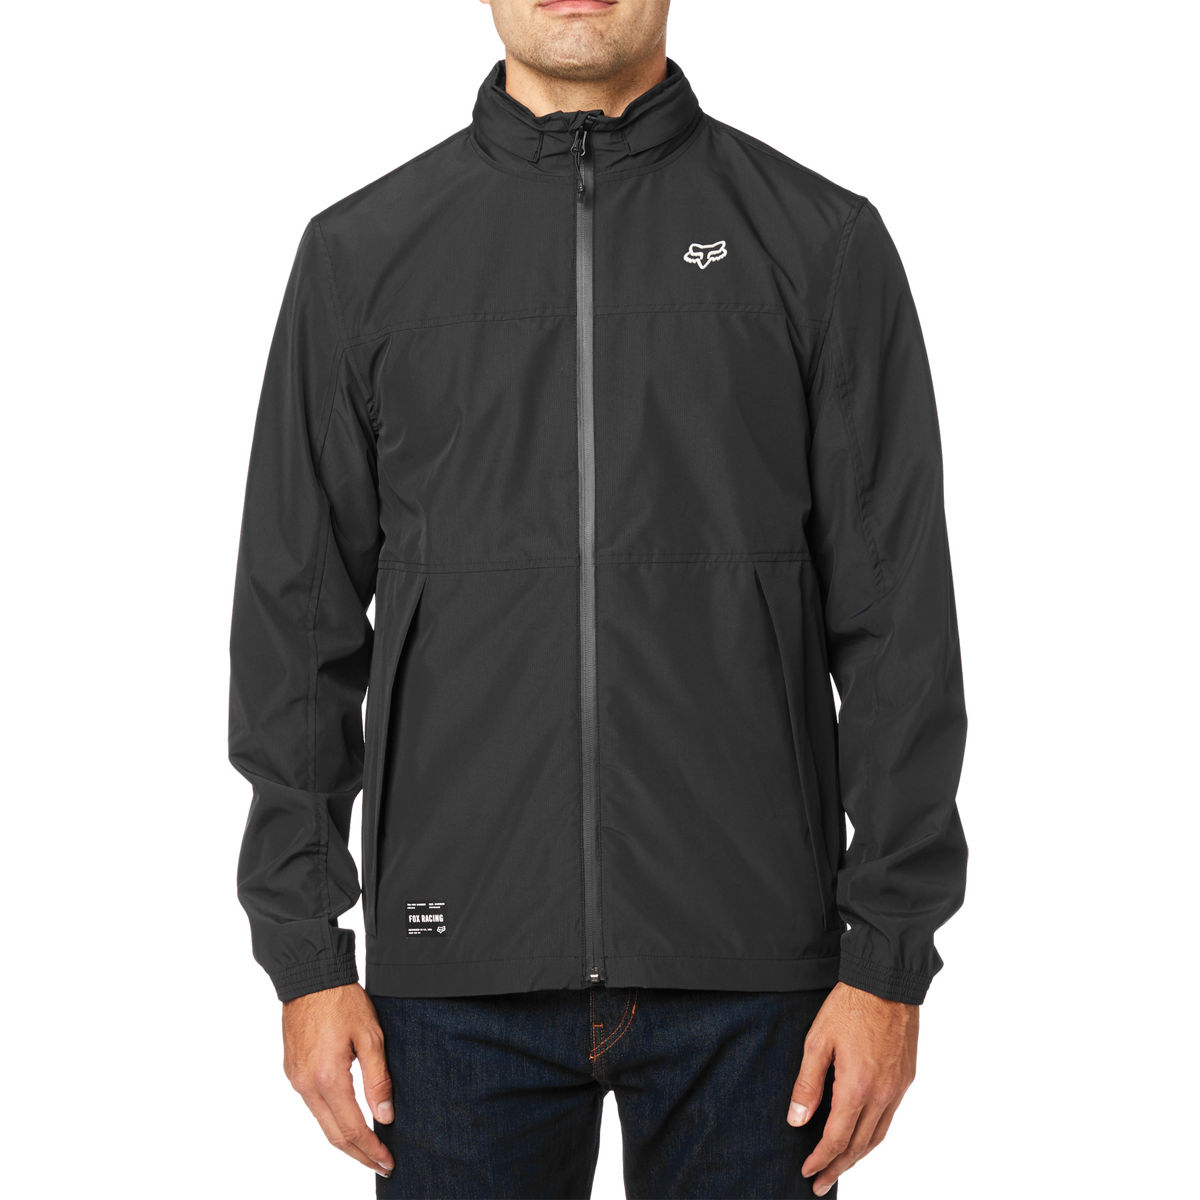 24087-001 Fox Racing Cascade Waterproof Jacket Black Waterdichte Regenjas Regenjacke Veste de Pluie